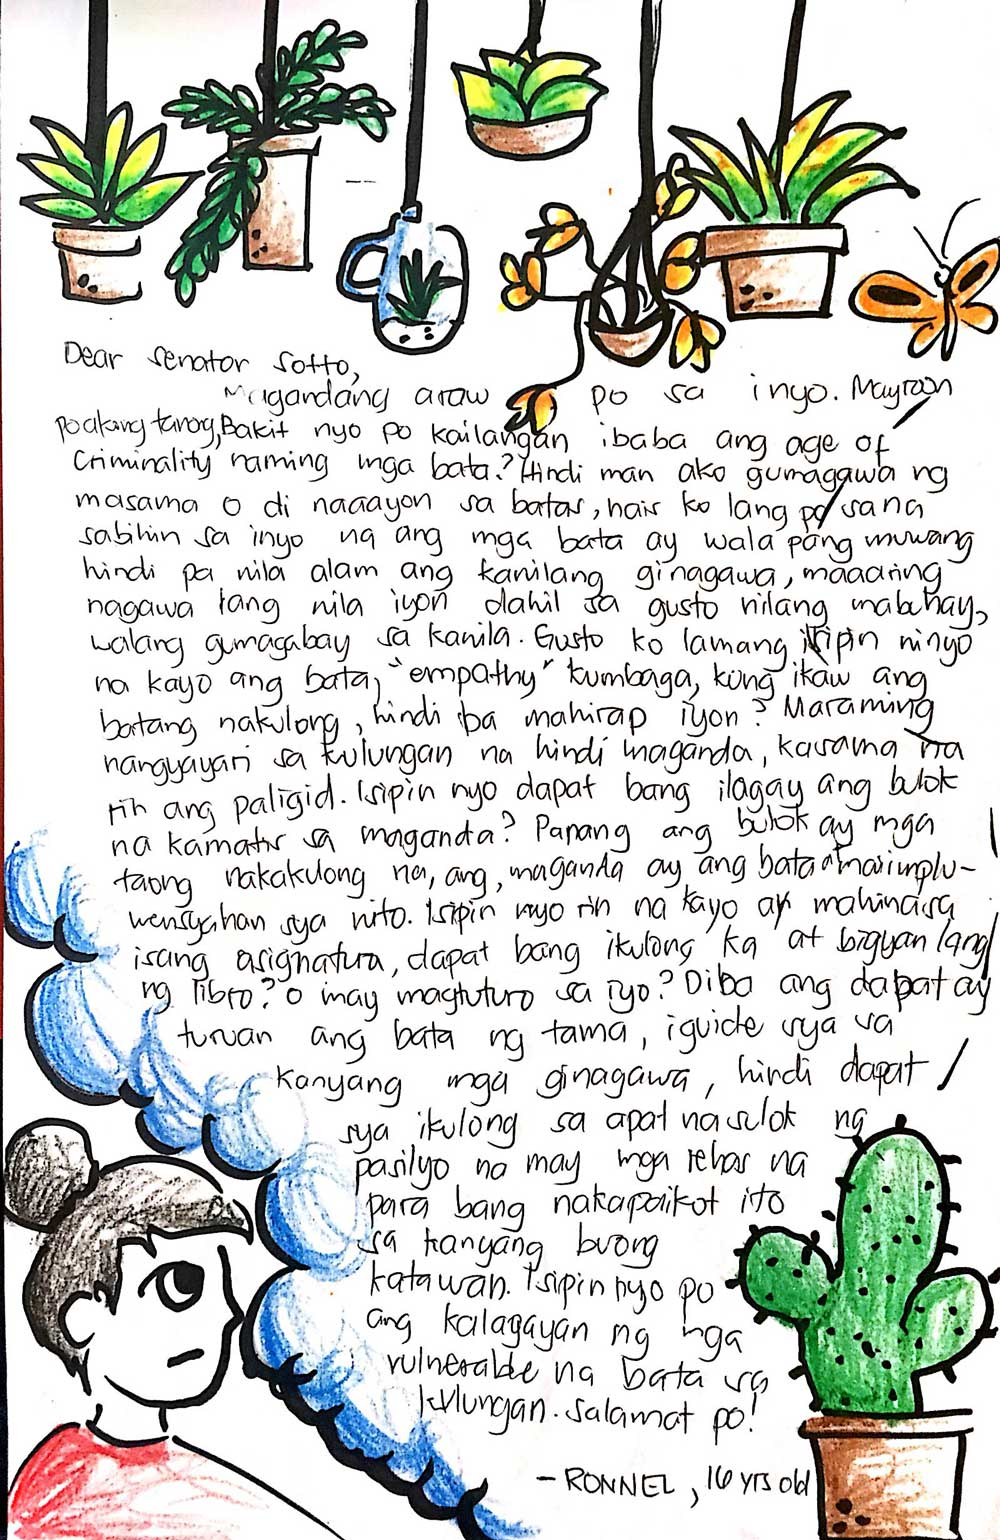 Letter to Senator Sotto from Ronnel, 16